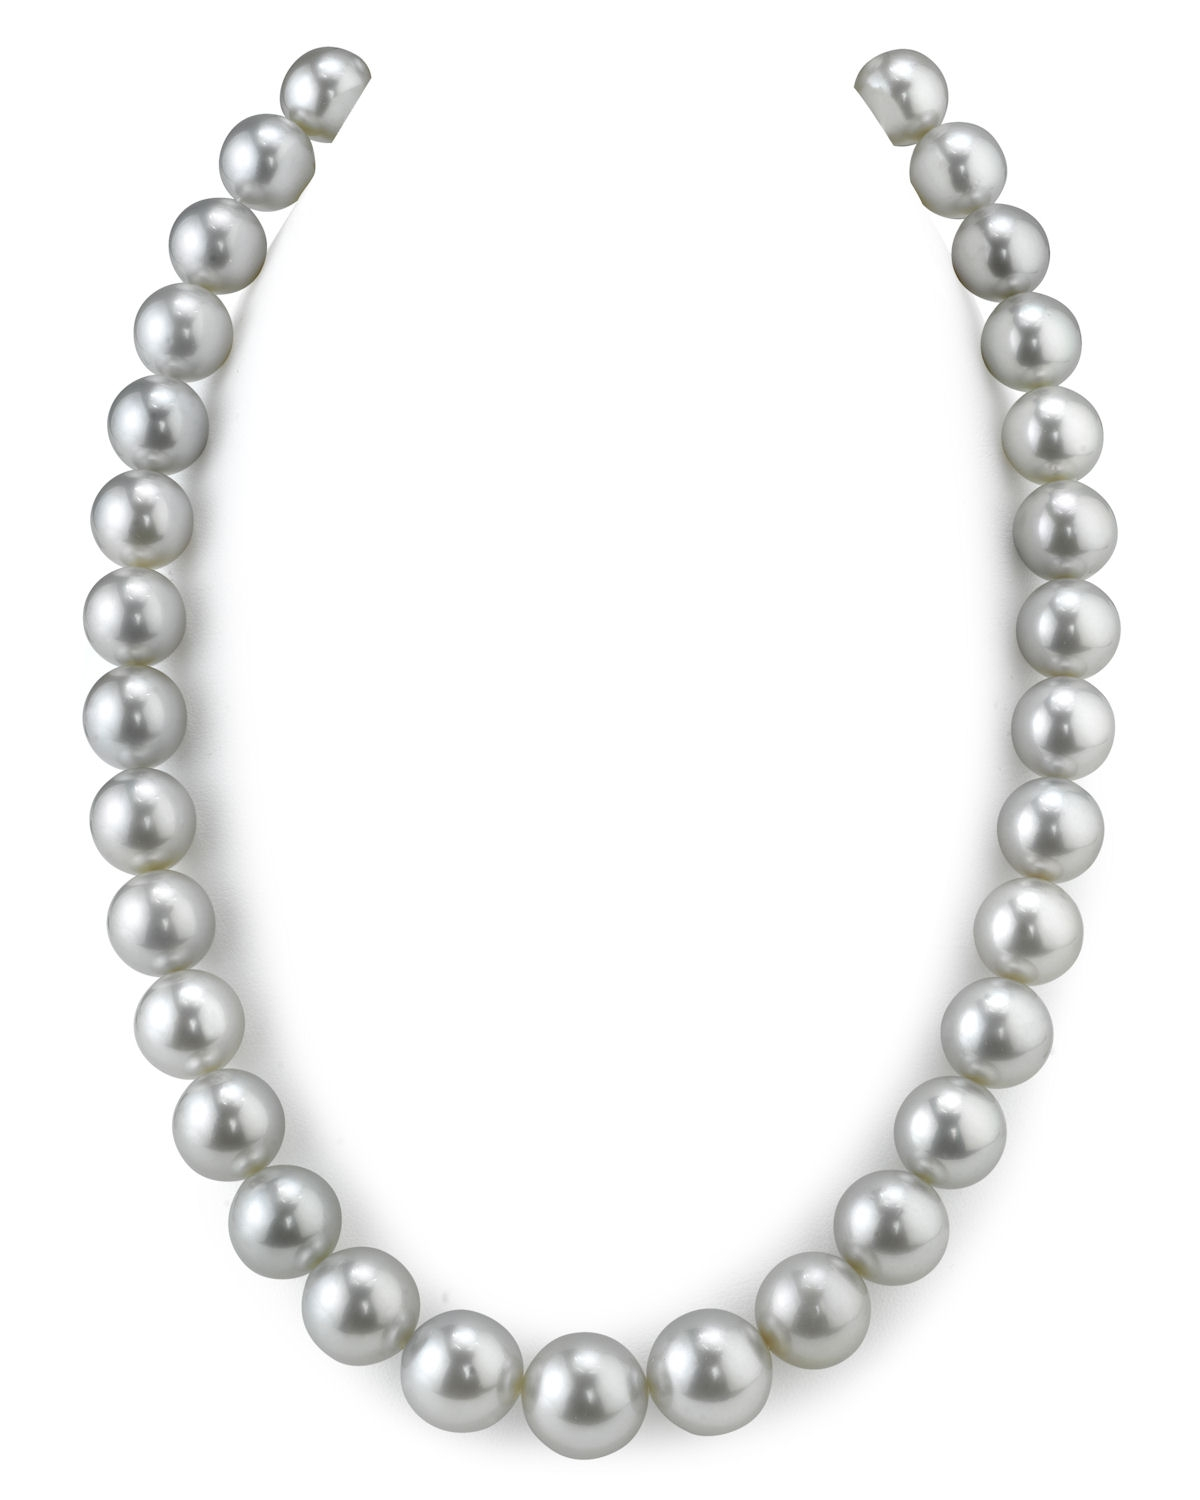 RARE 11-14.2mm Platinum Tahitian South Sea Pearl Necklace ...